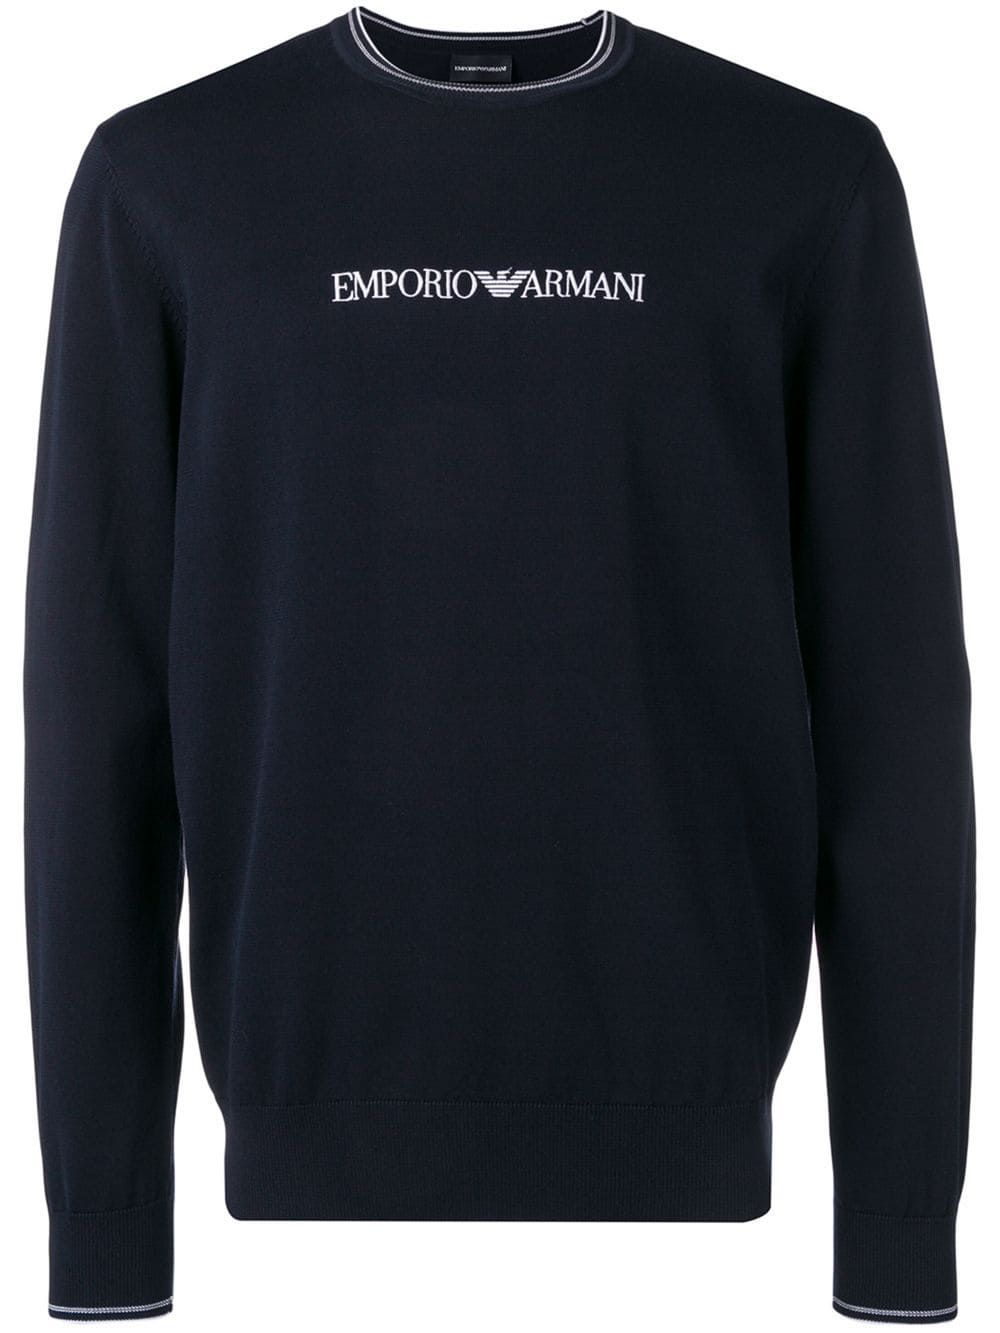 b84148cdf8 Emporio Armani embroidered logo jumper - Blue in 2019 | Products ...